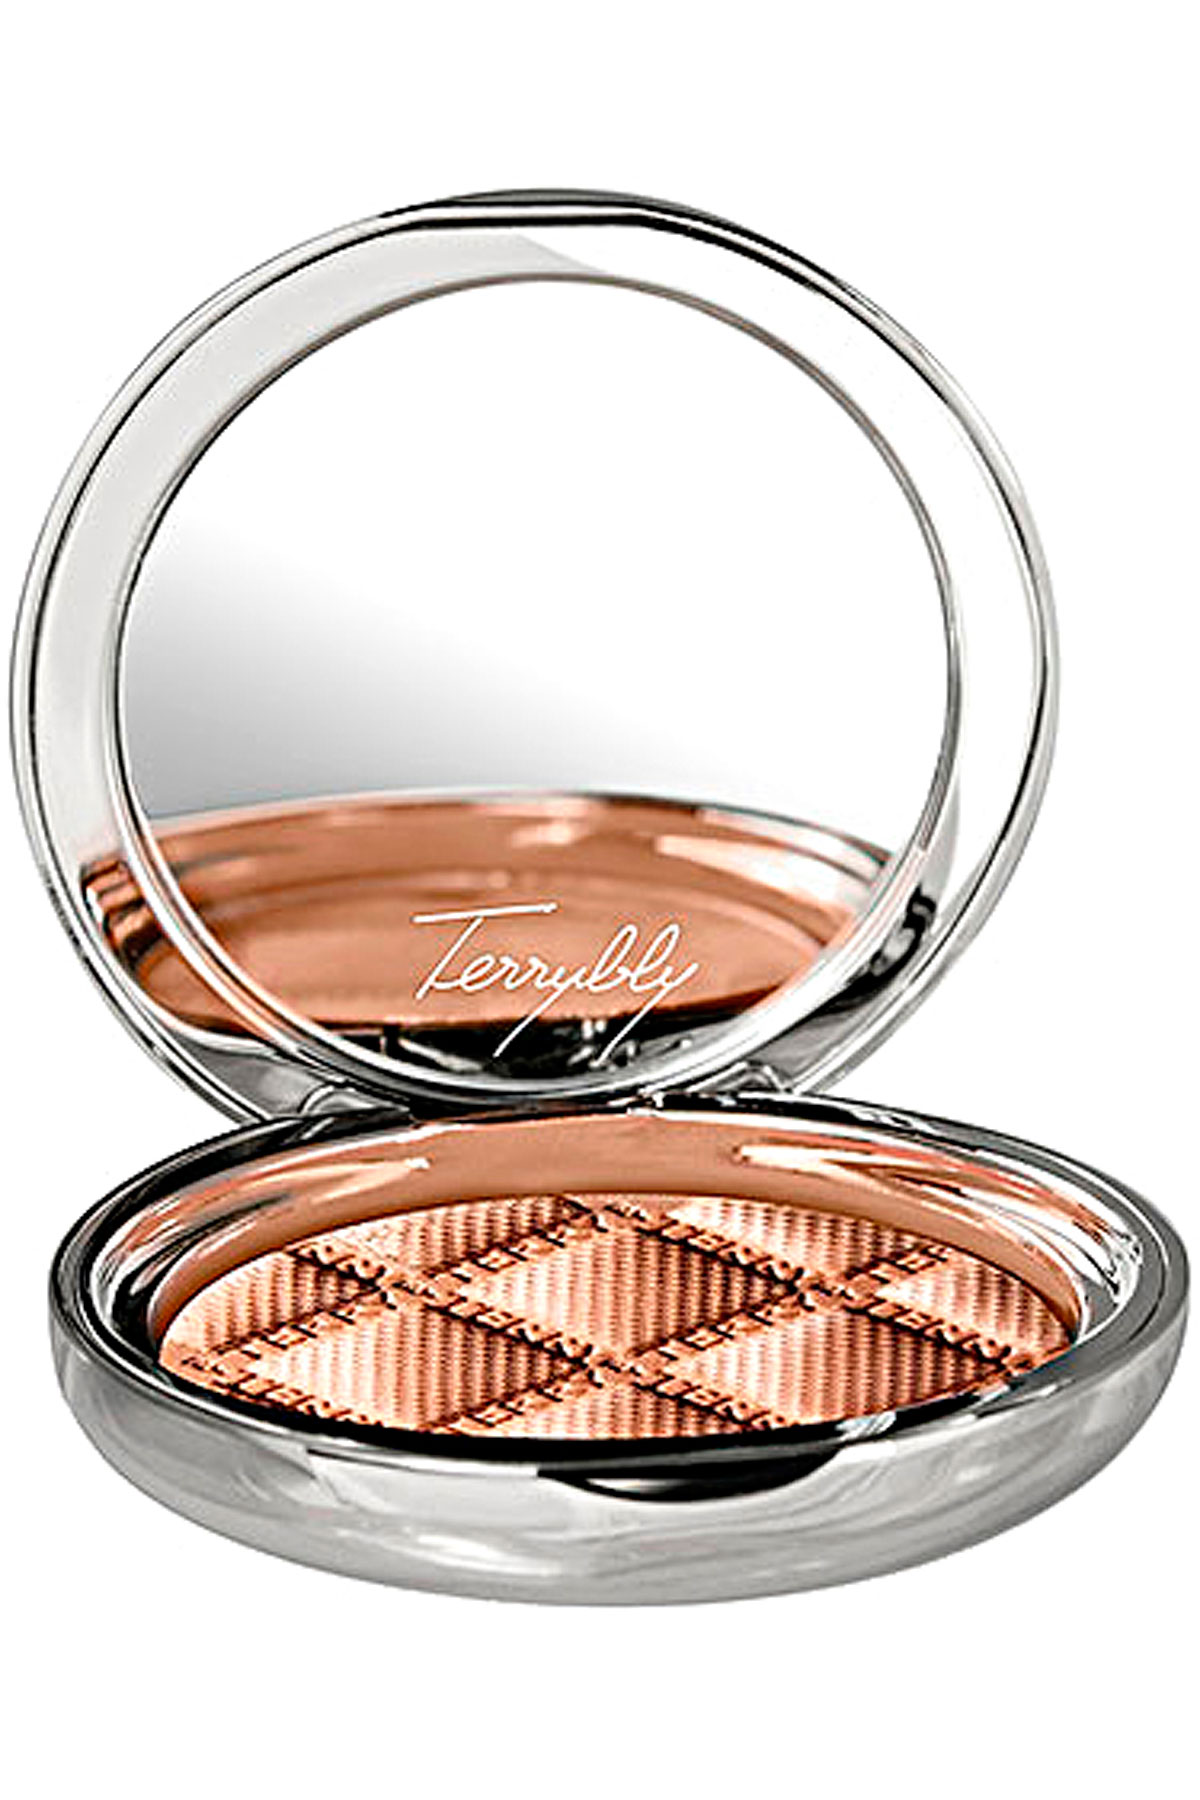 By Terry Makeup For Women, Terrybly Densiliss Compact Lifting Foundation - 01 Melody Fair - 5.5 Gr, Melody Fair, 2019, 5.5 Gr